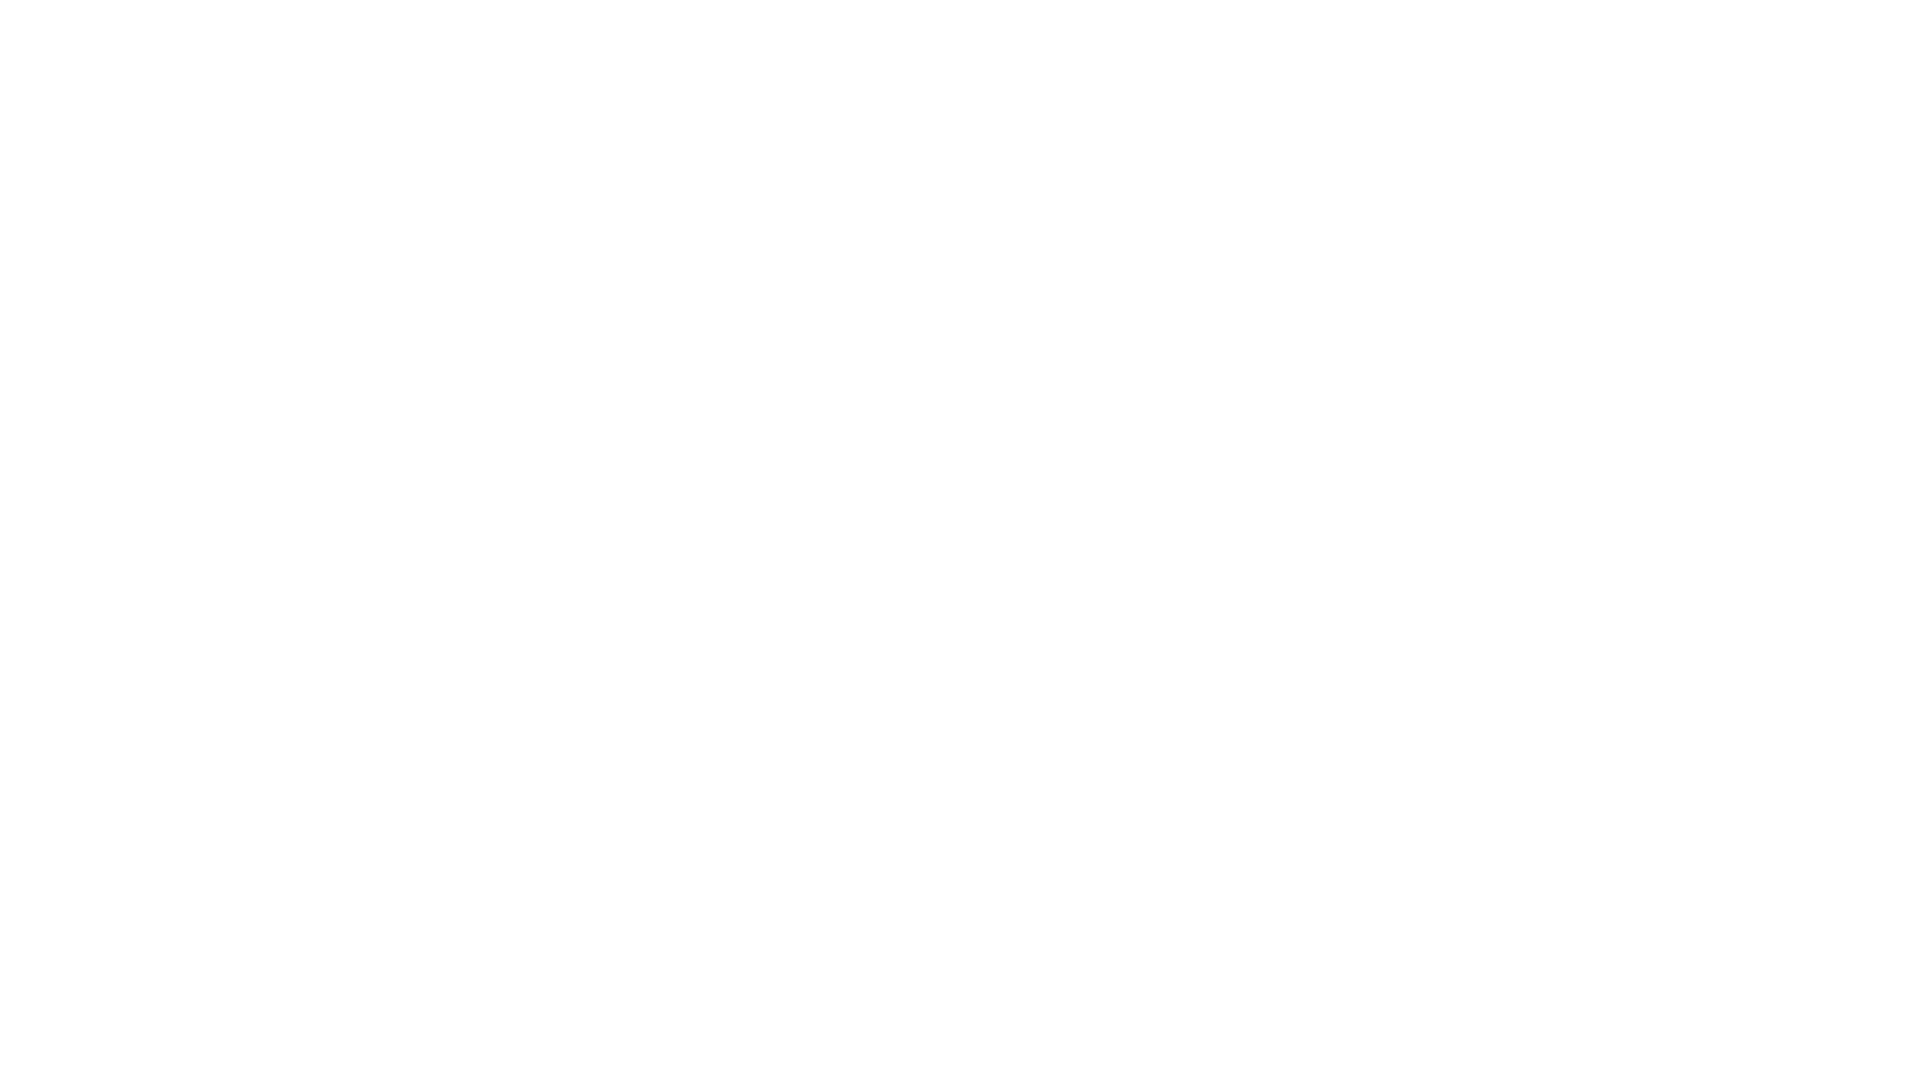 The Vehicle Scout logo on a transparent background with people enjoying their recently purchased pre-owned vehicle.